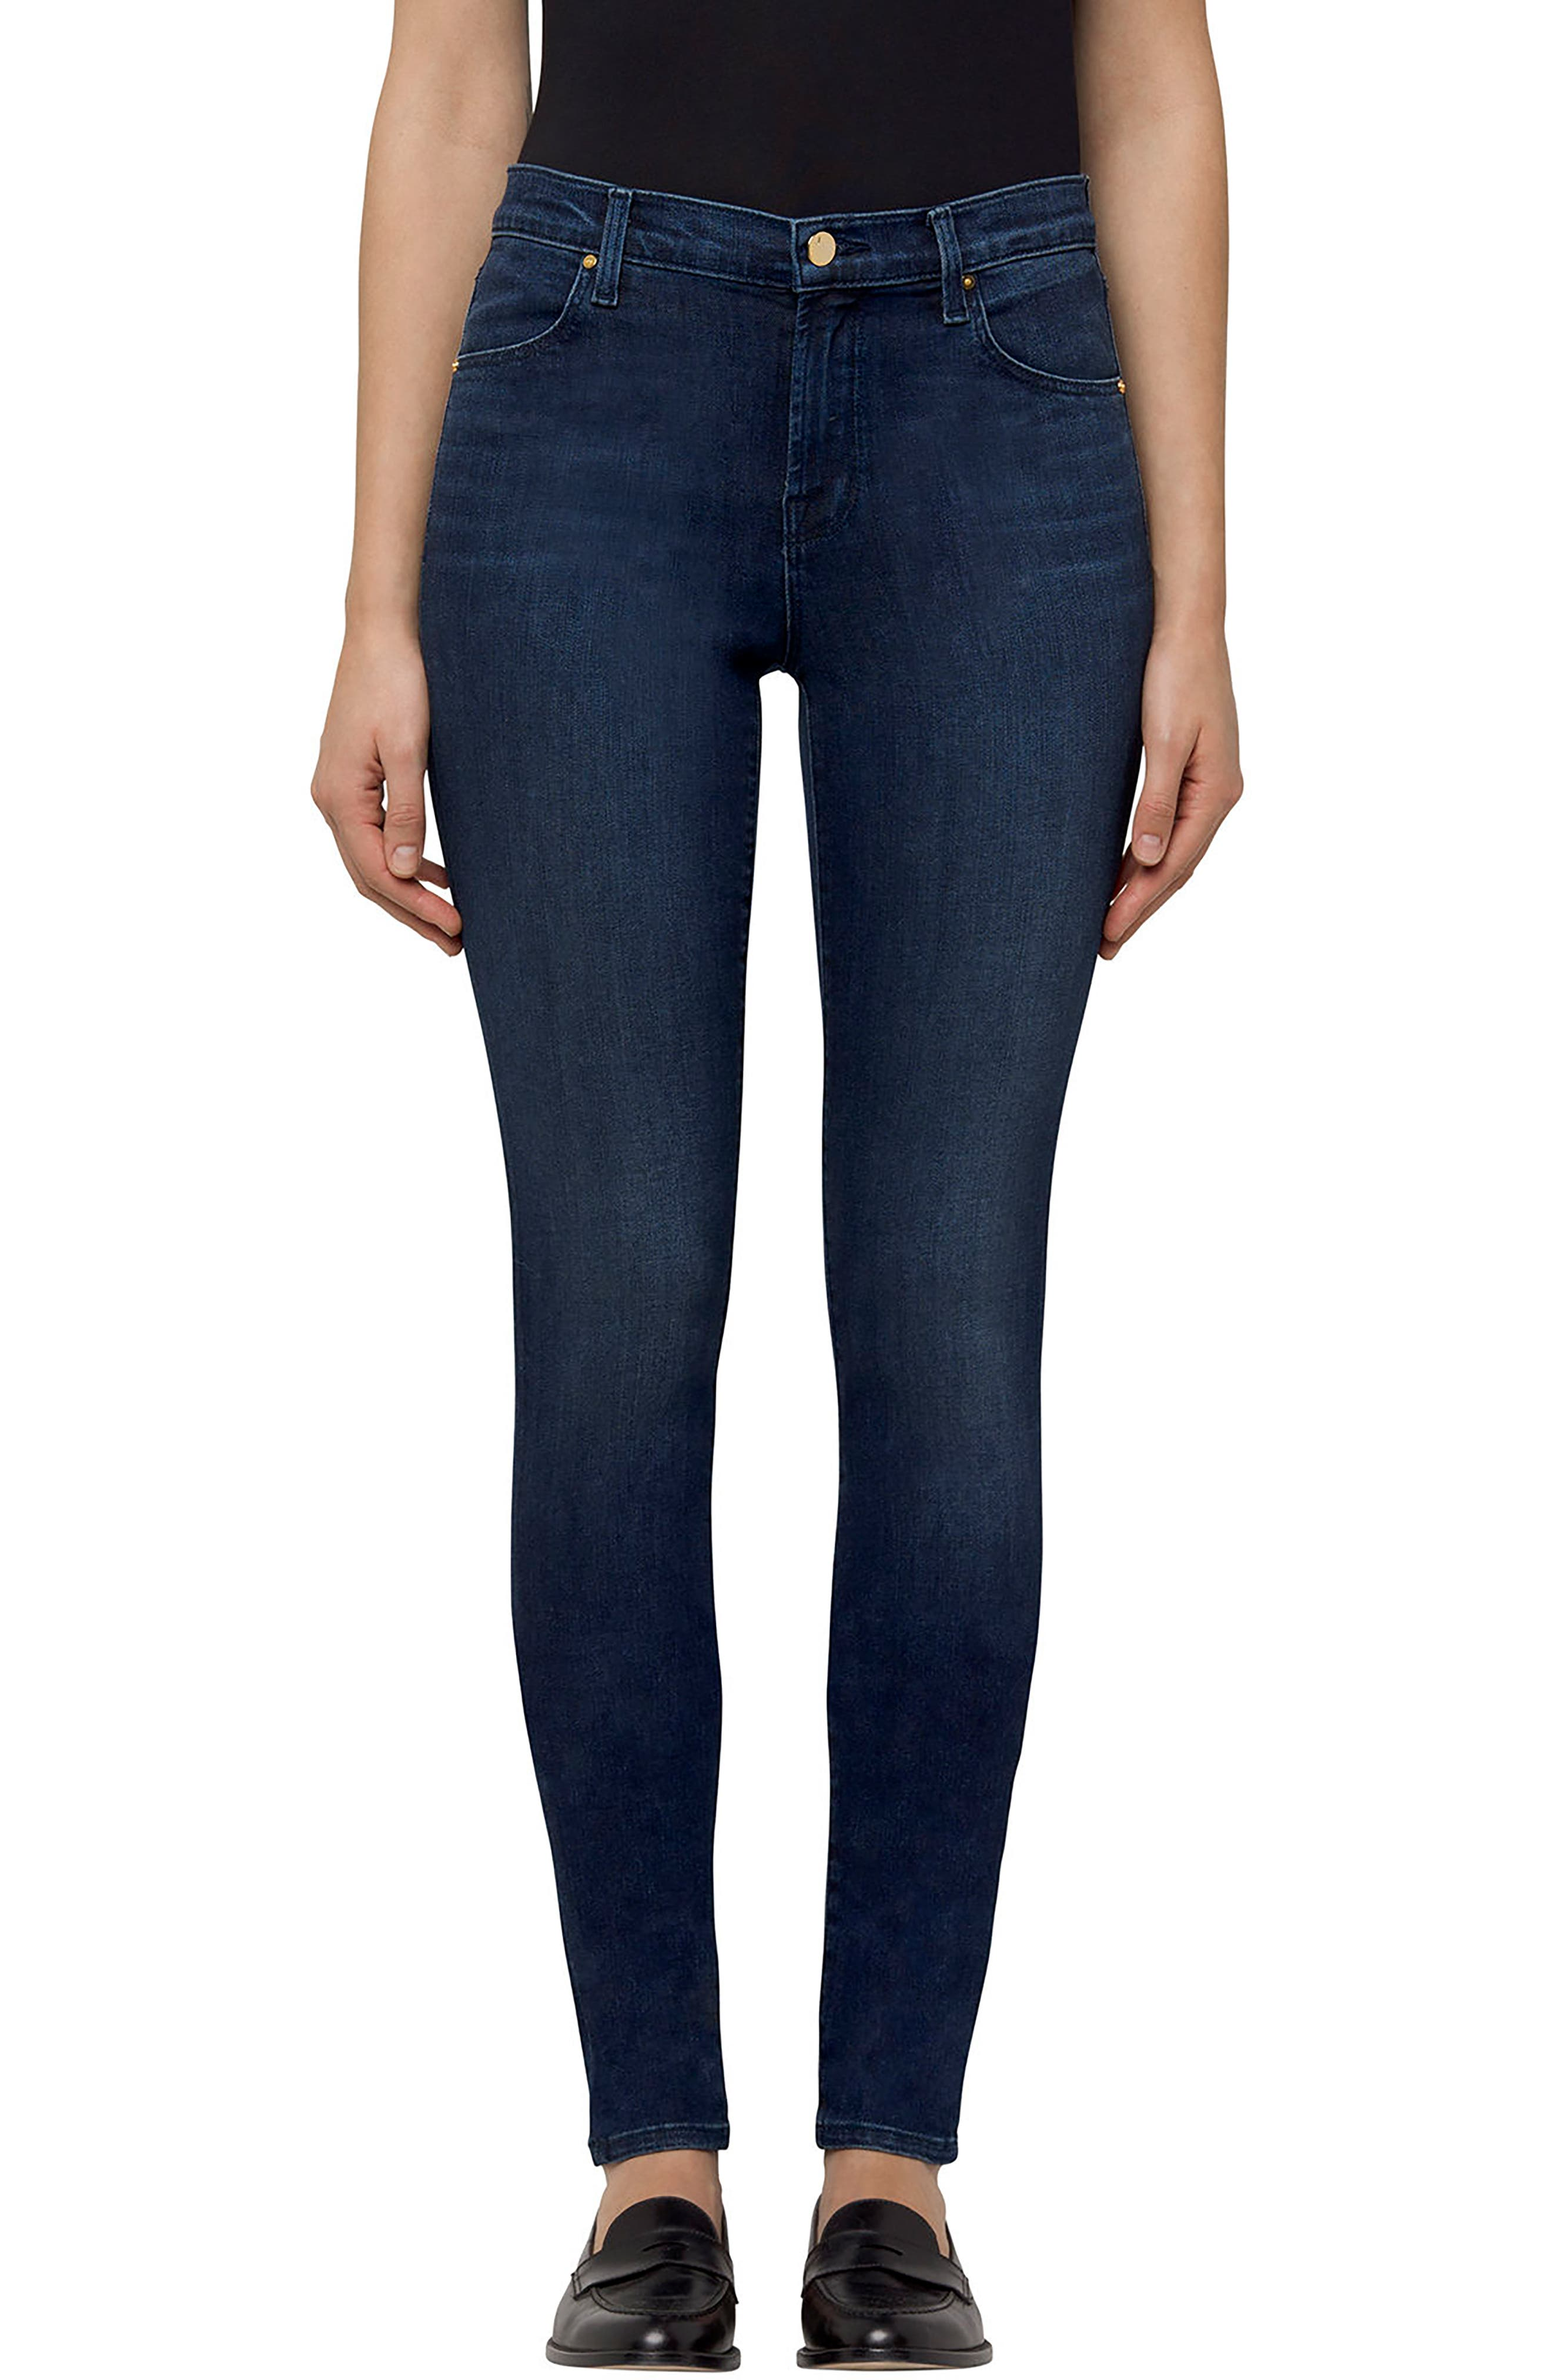 Maria High Waist Skinny Jeans,                             Main thumbnail 1, color,                             413